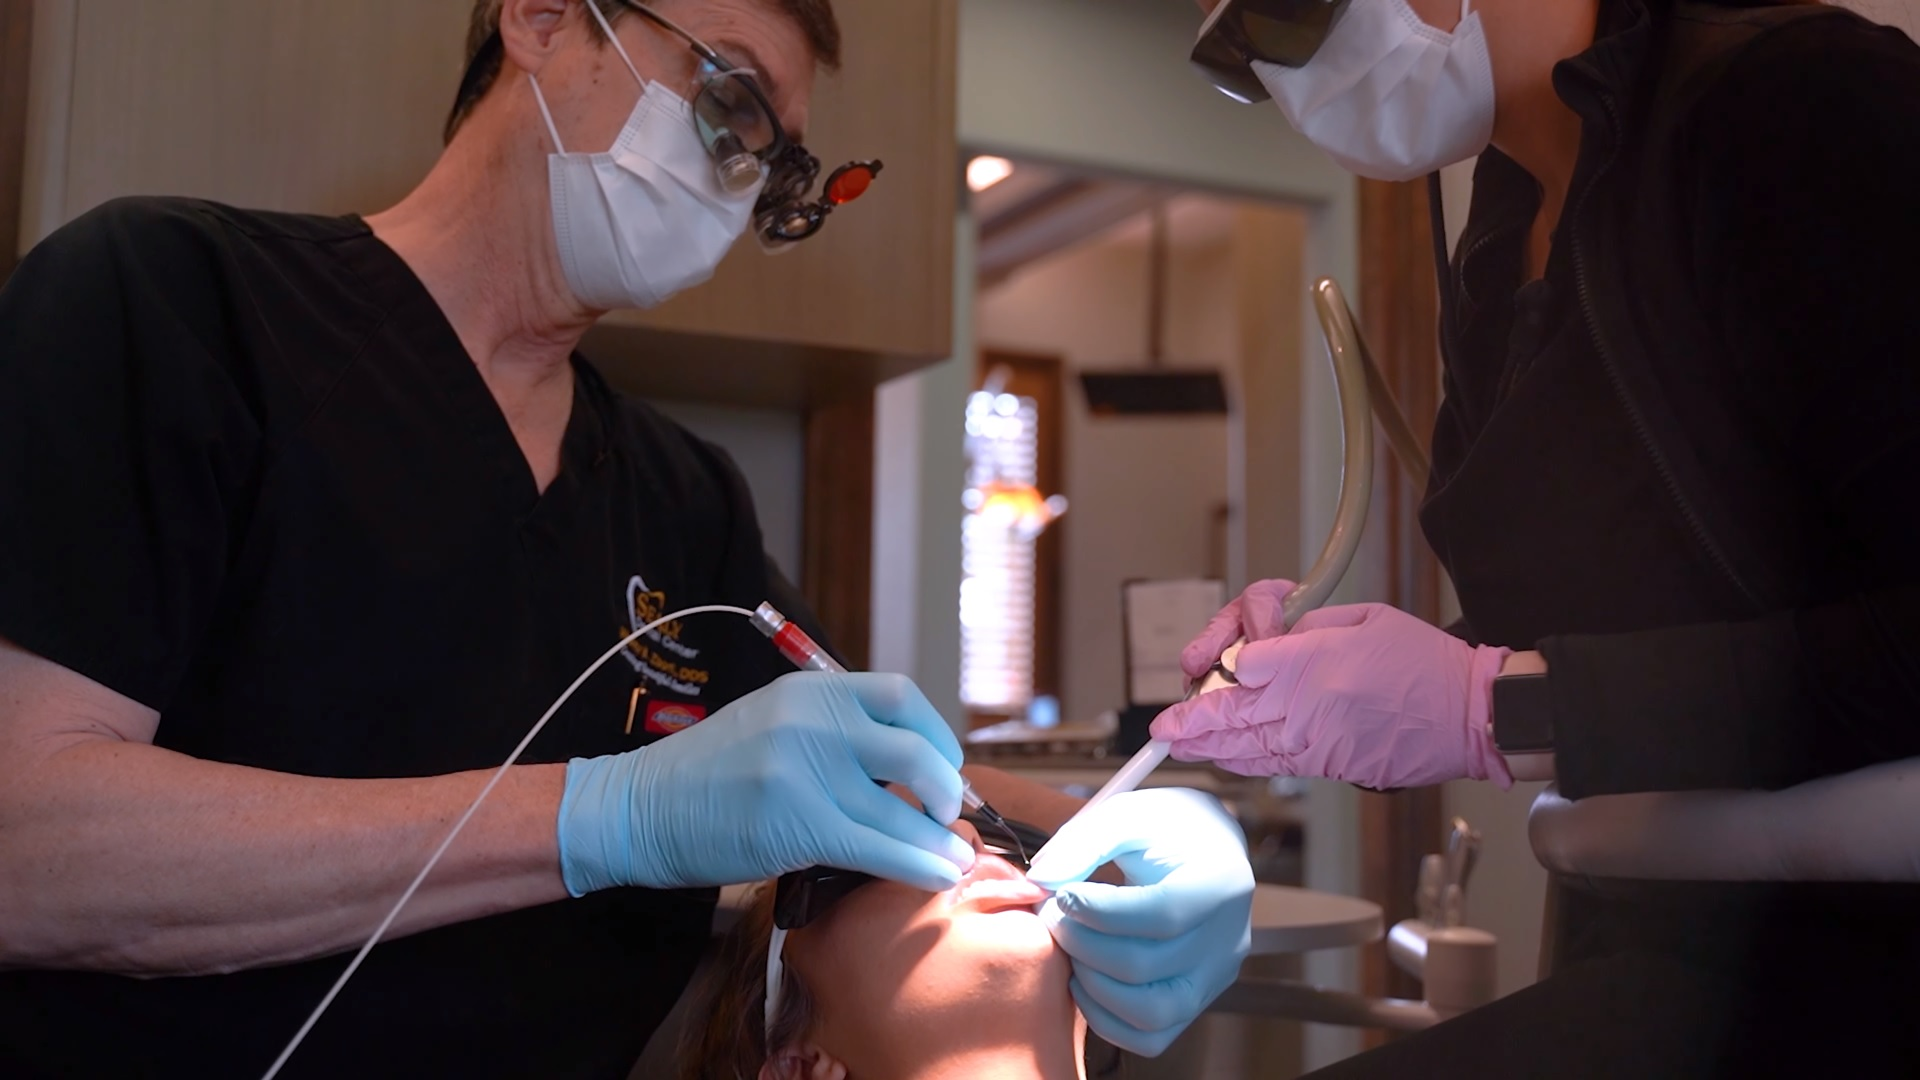 Dr Wesley Zboril performing endodontic treatment at Sealy Dental Center